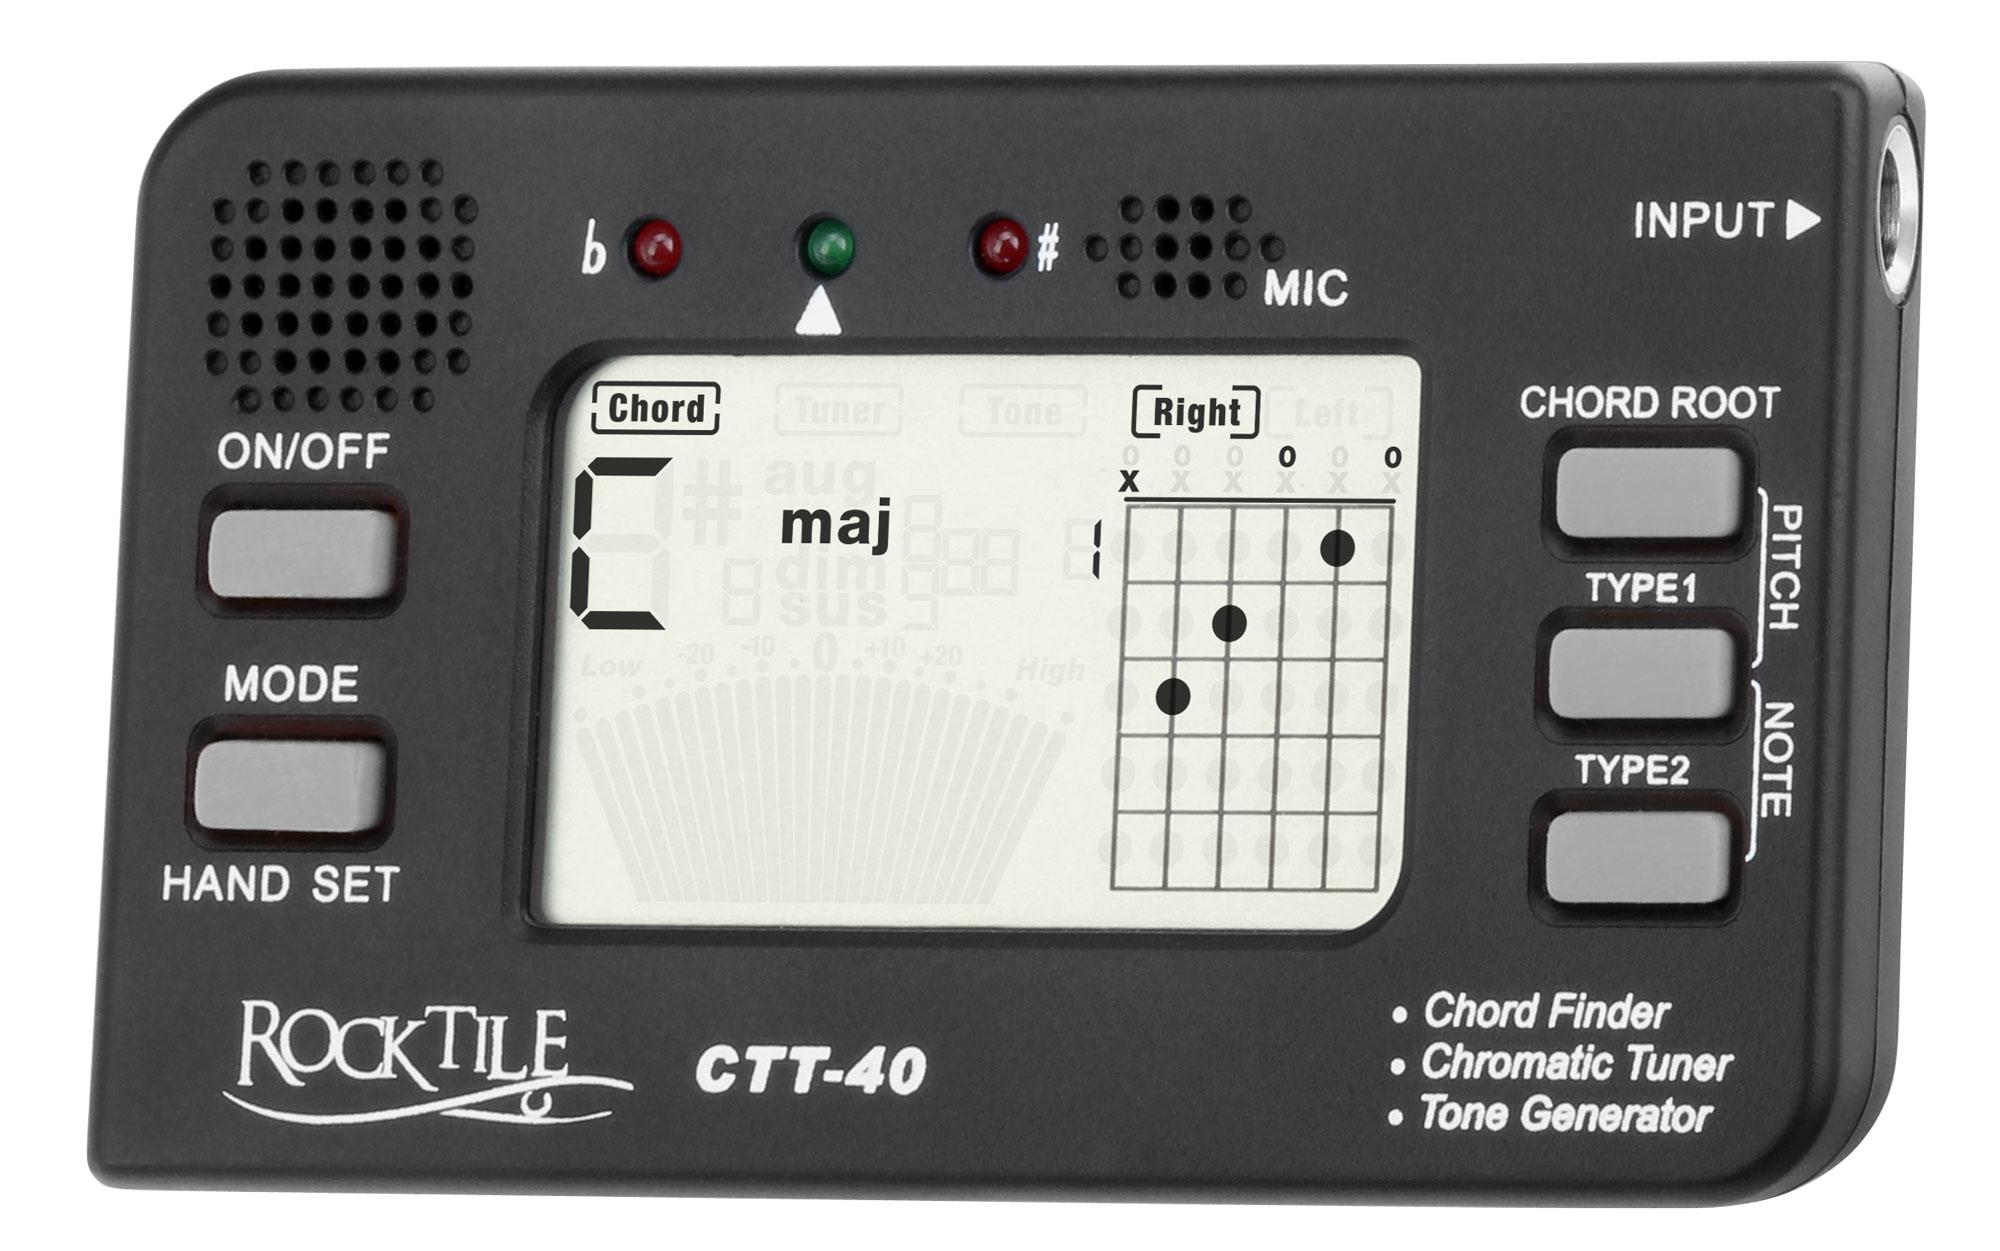 Rocktile ctt 40 chord finder tuner all in one device for rocktile ctt 40 chord finder tuner all in one device for guitarists with tone generator hexwebz Choice Image